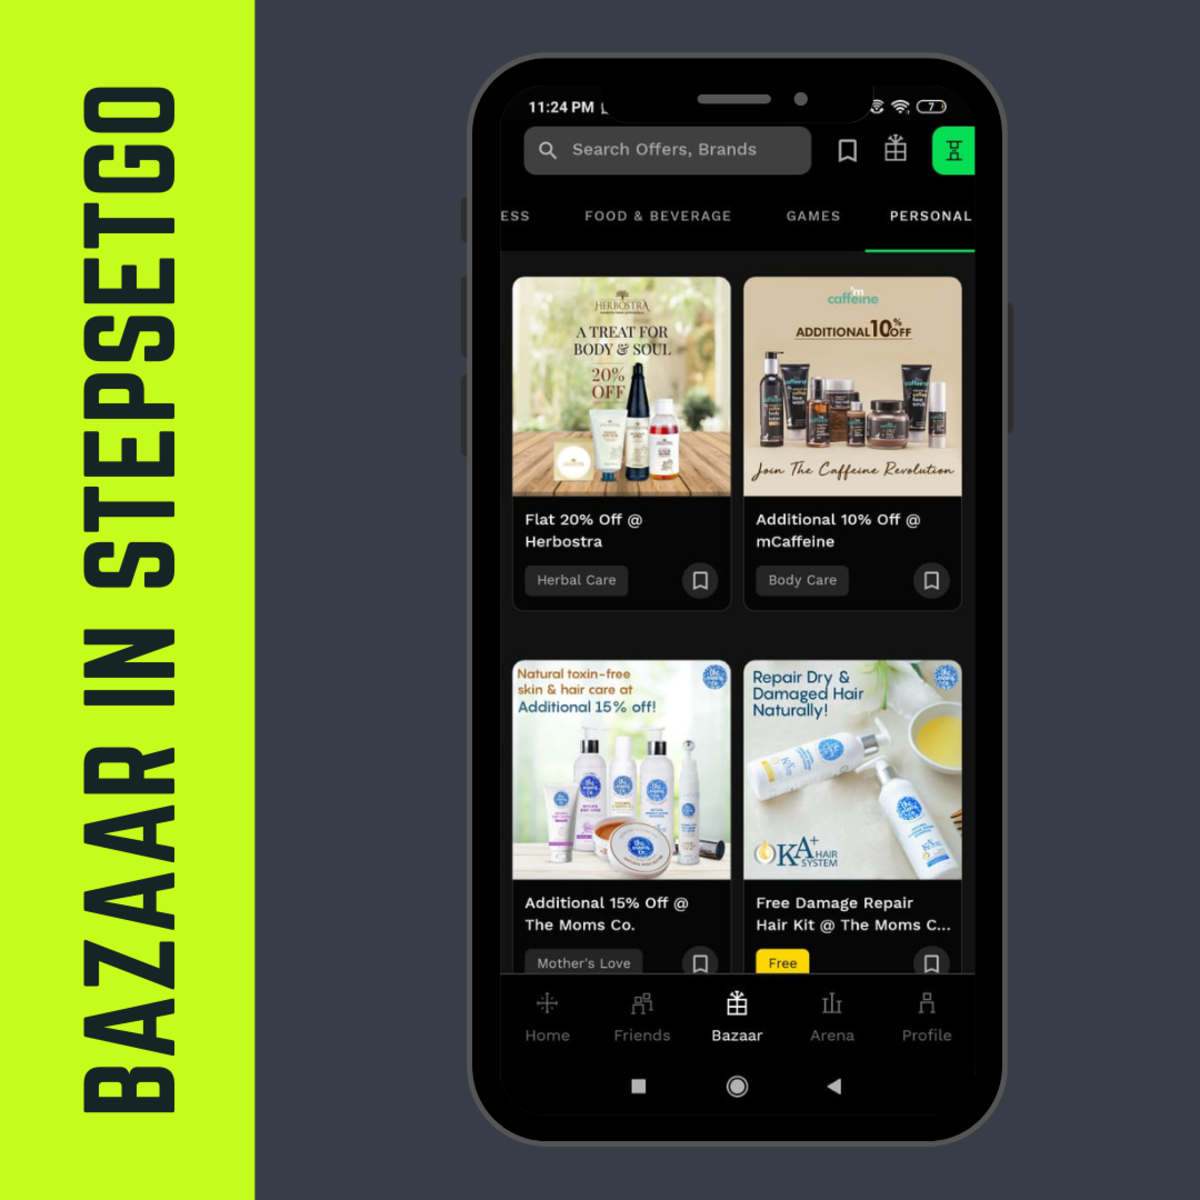 Bazaar in StepSetGo App